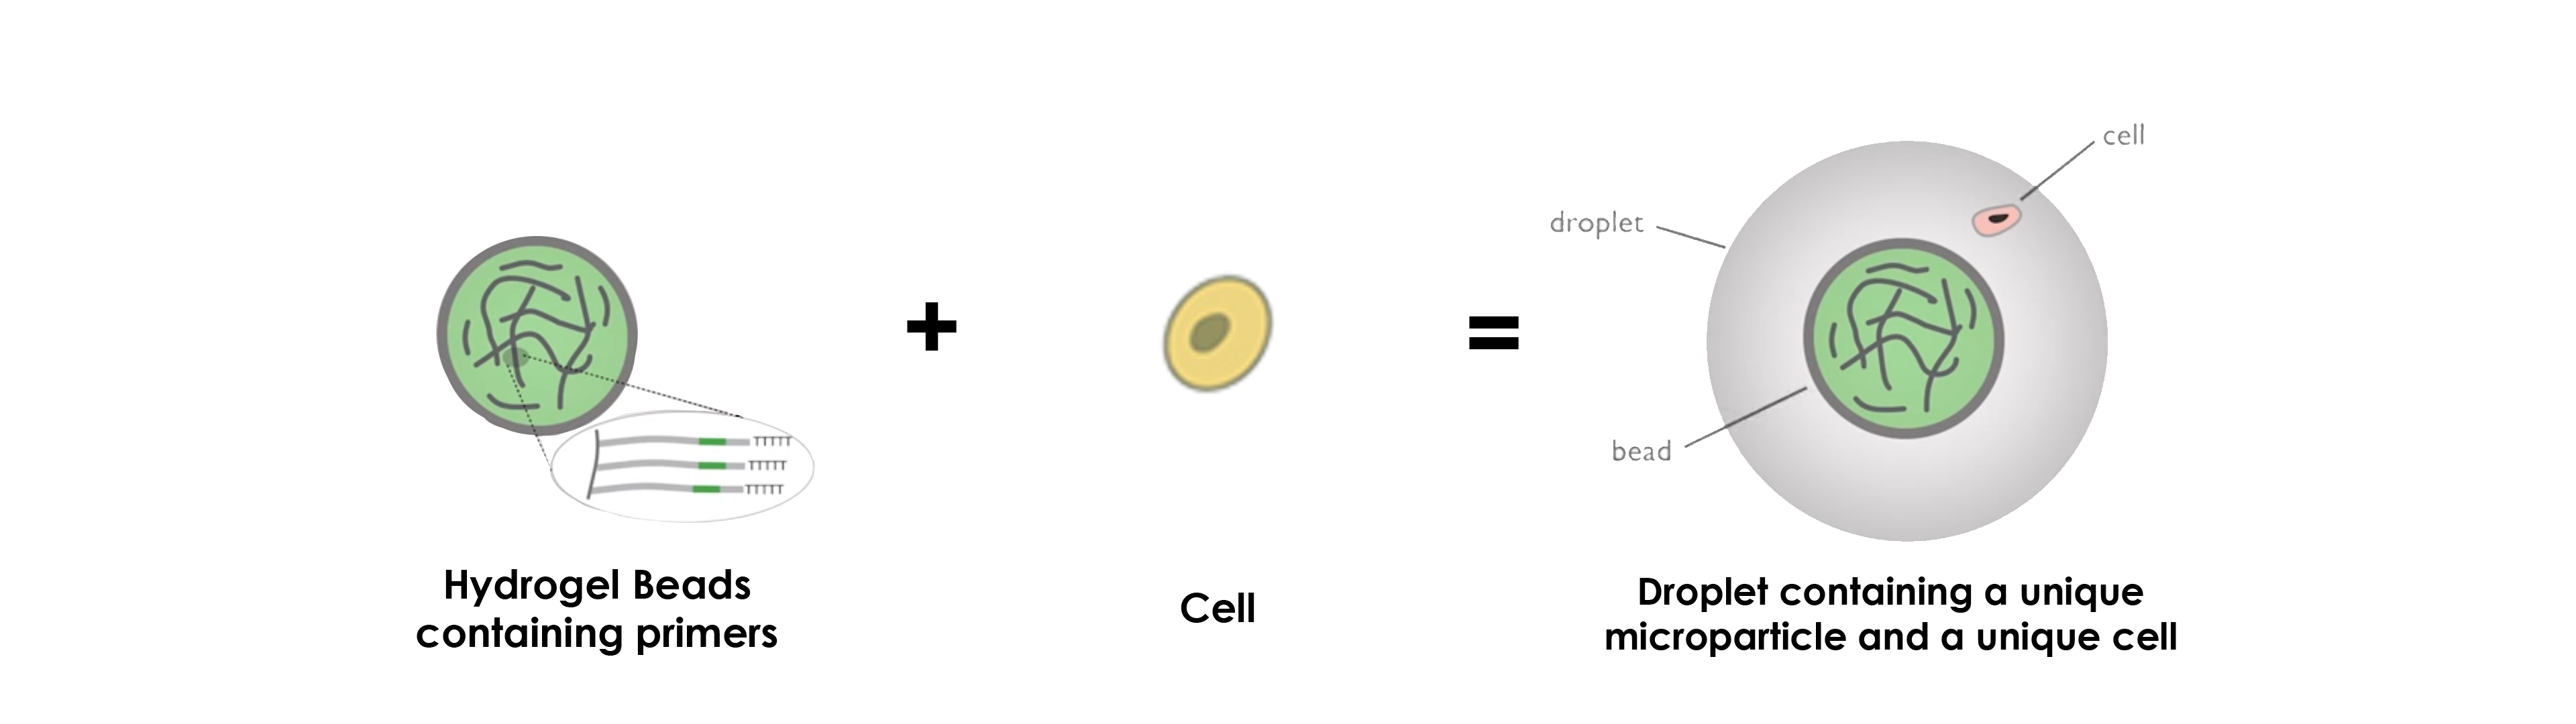 hydrogel-beads-microparticles-drop-seq-microfluidics-single-cells-analysis-ARN-AND-barcode-complex-tissue